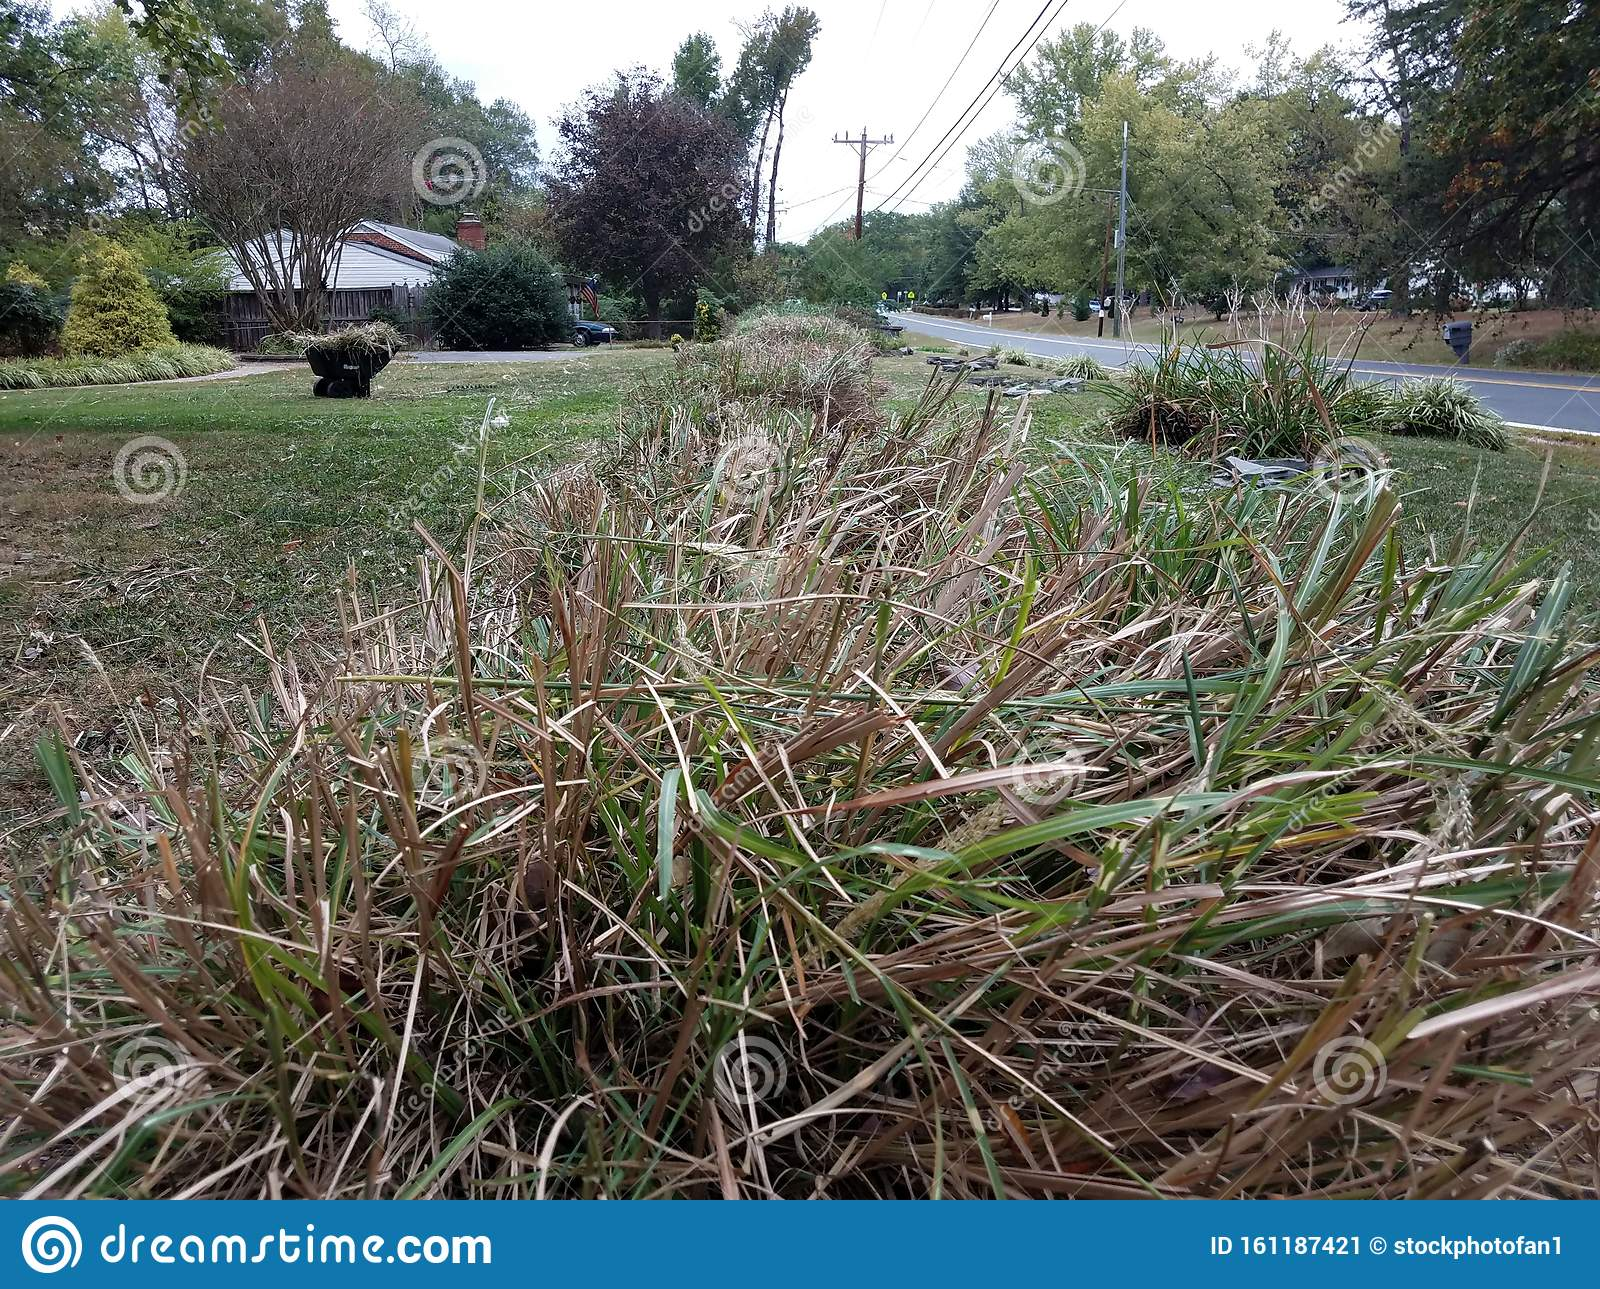 Large Grasses Cut Or Trimmed In Lawn Or Yard Stock Image Image